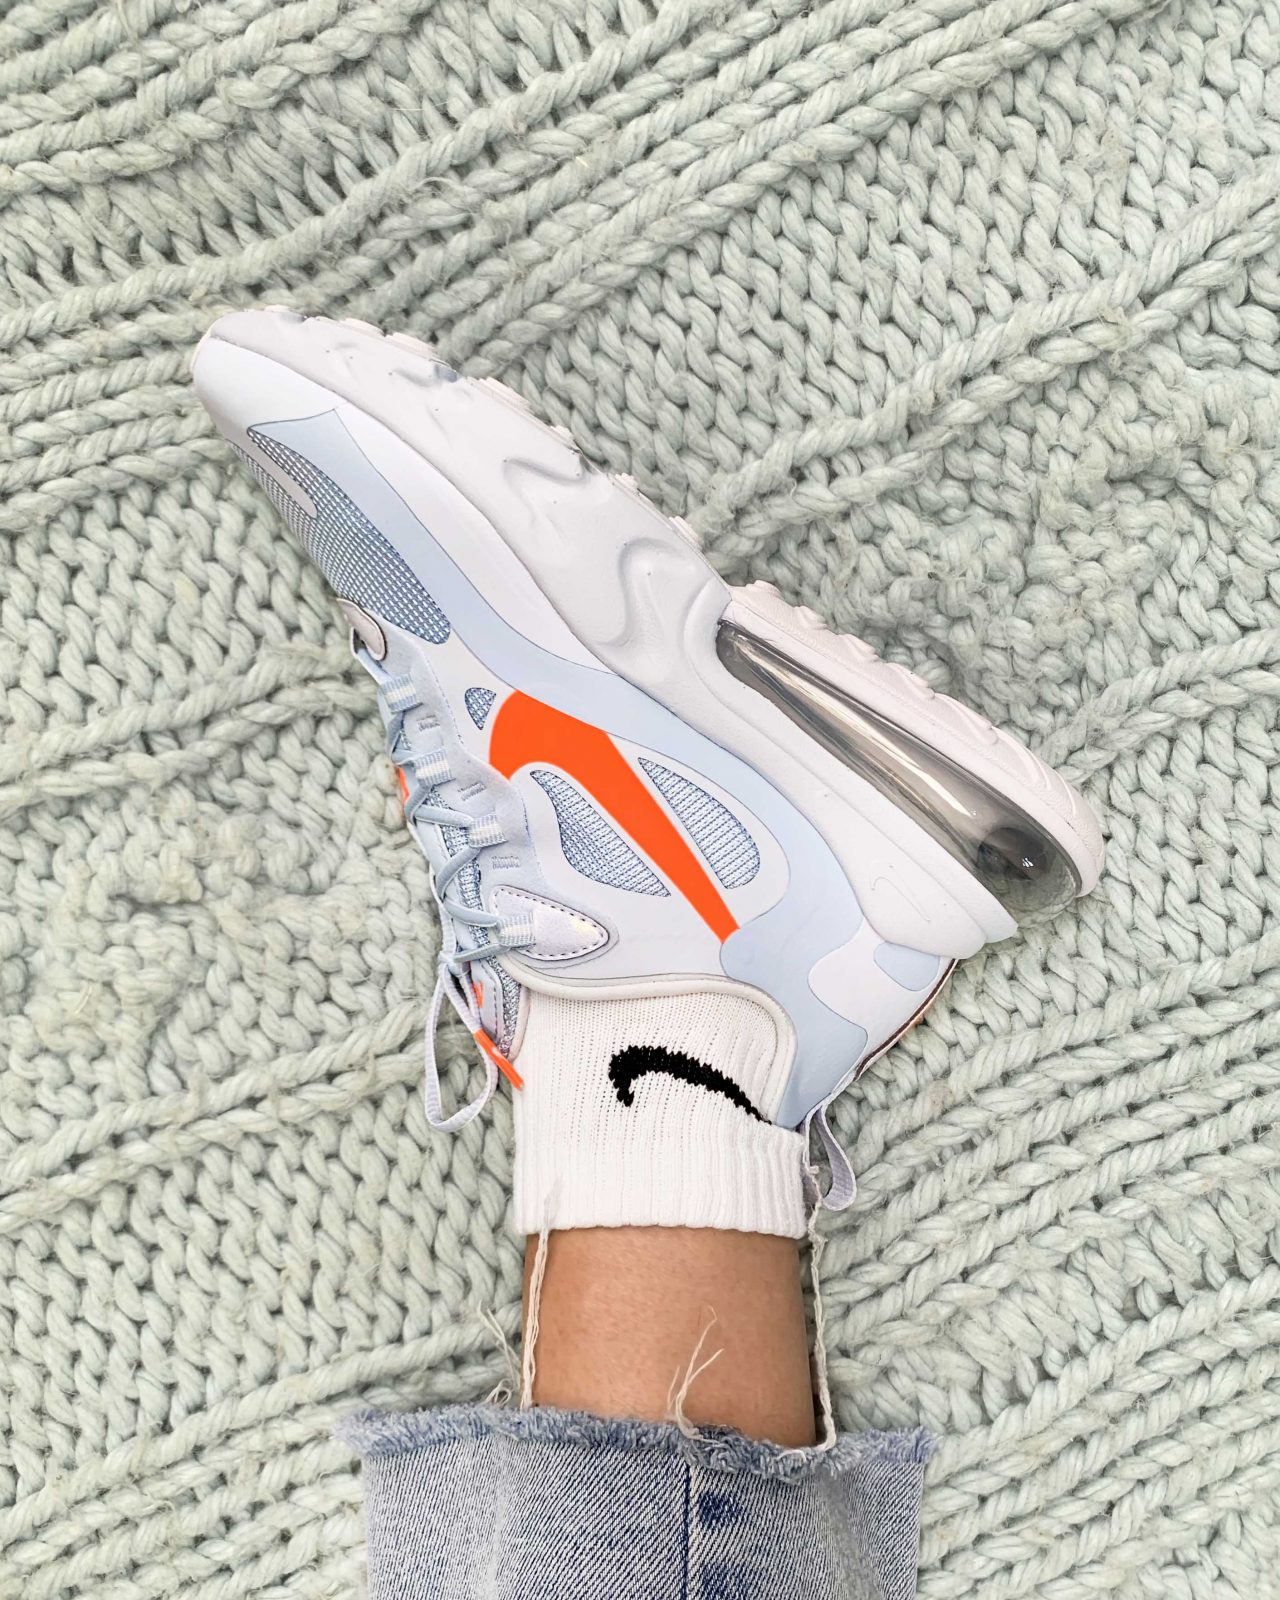 This Pastel Air Max 270 React In Hydrogen Blue Is A Must Have